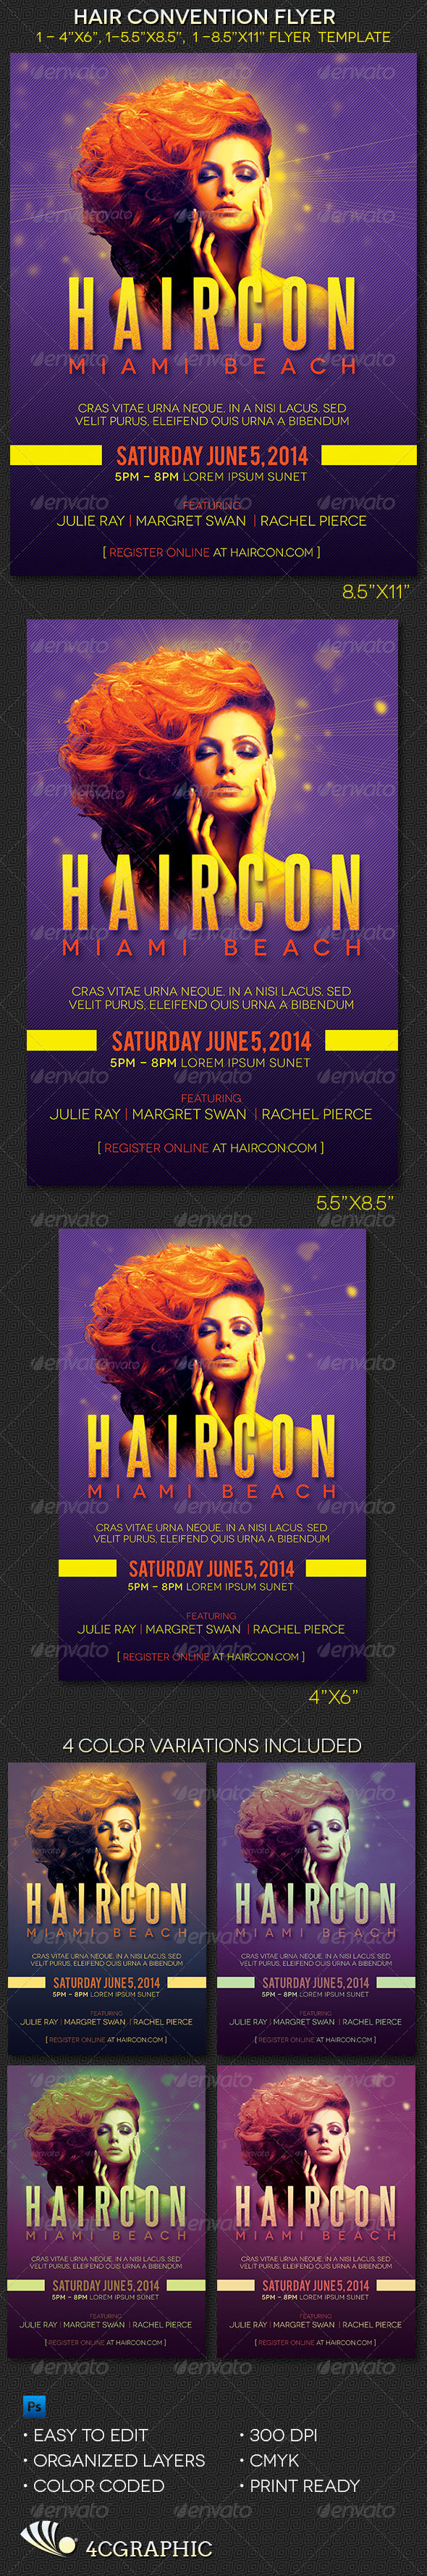 GraphicRiver Hair Convention Flyer Template 8169890